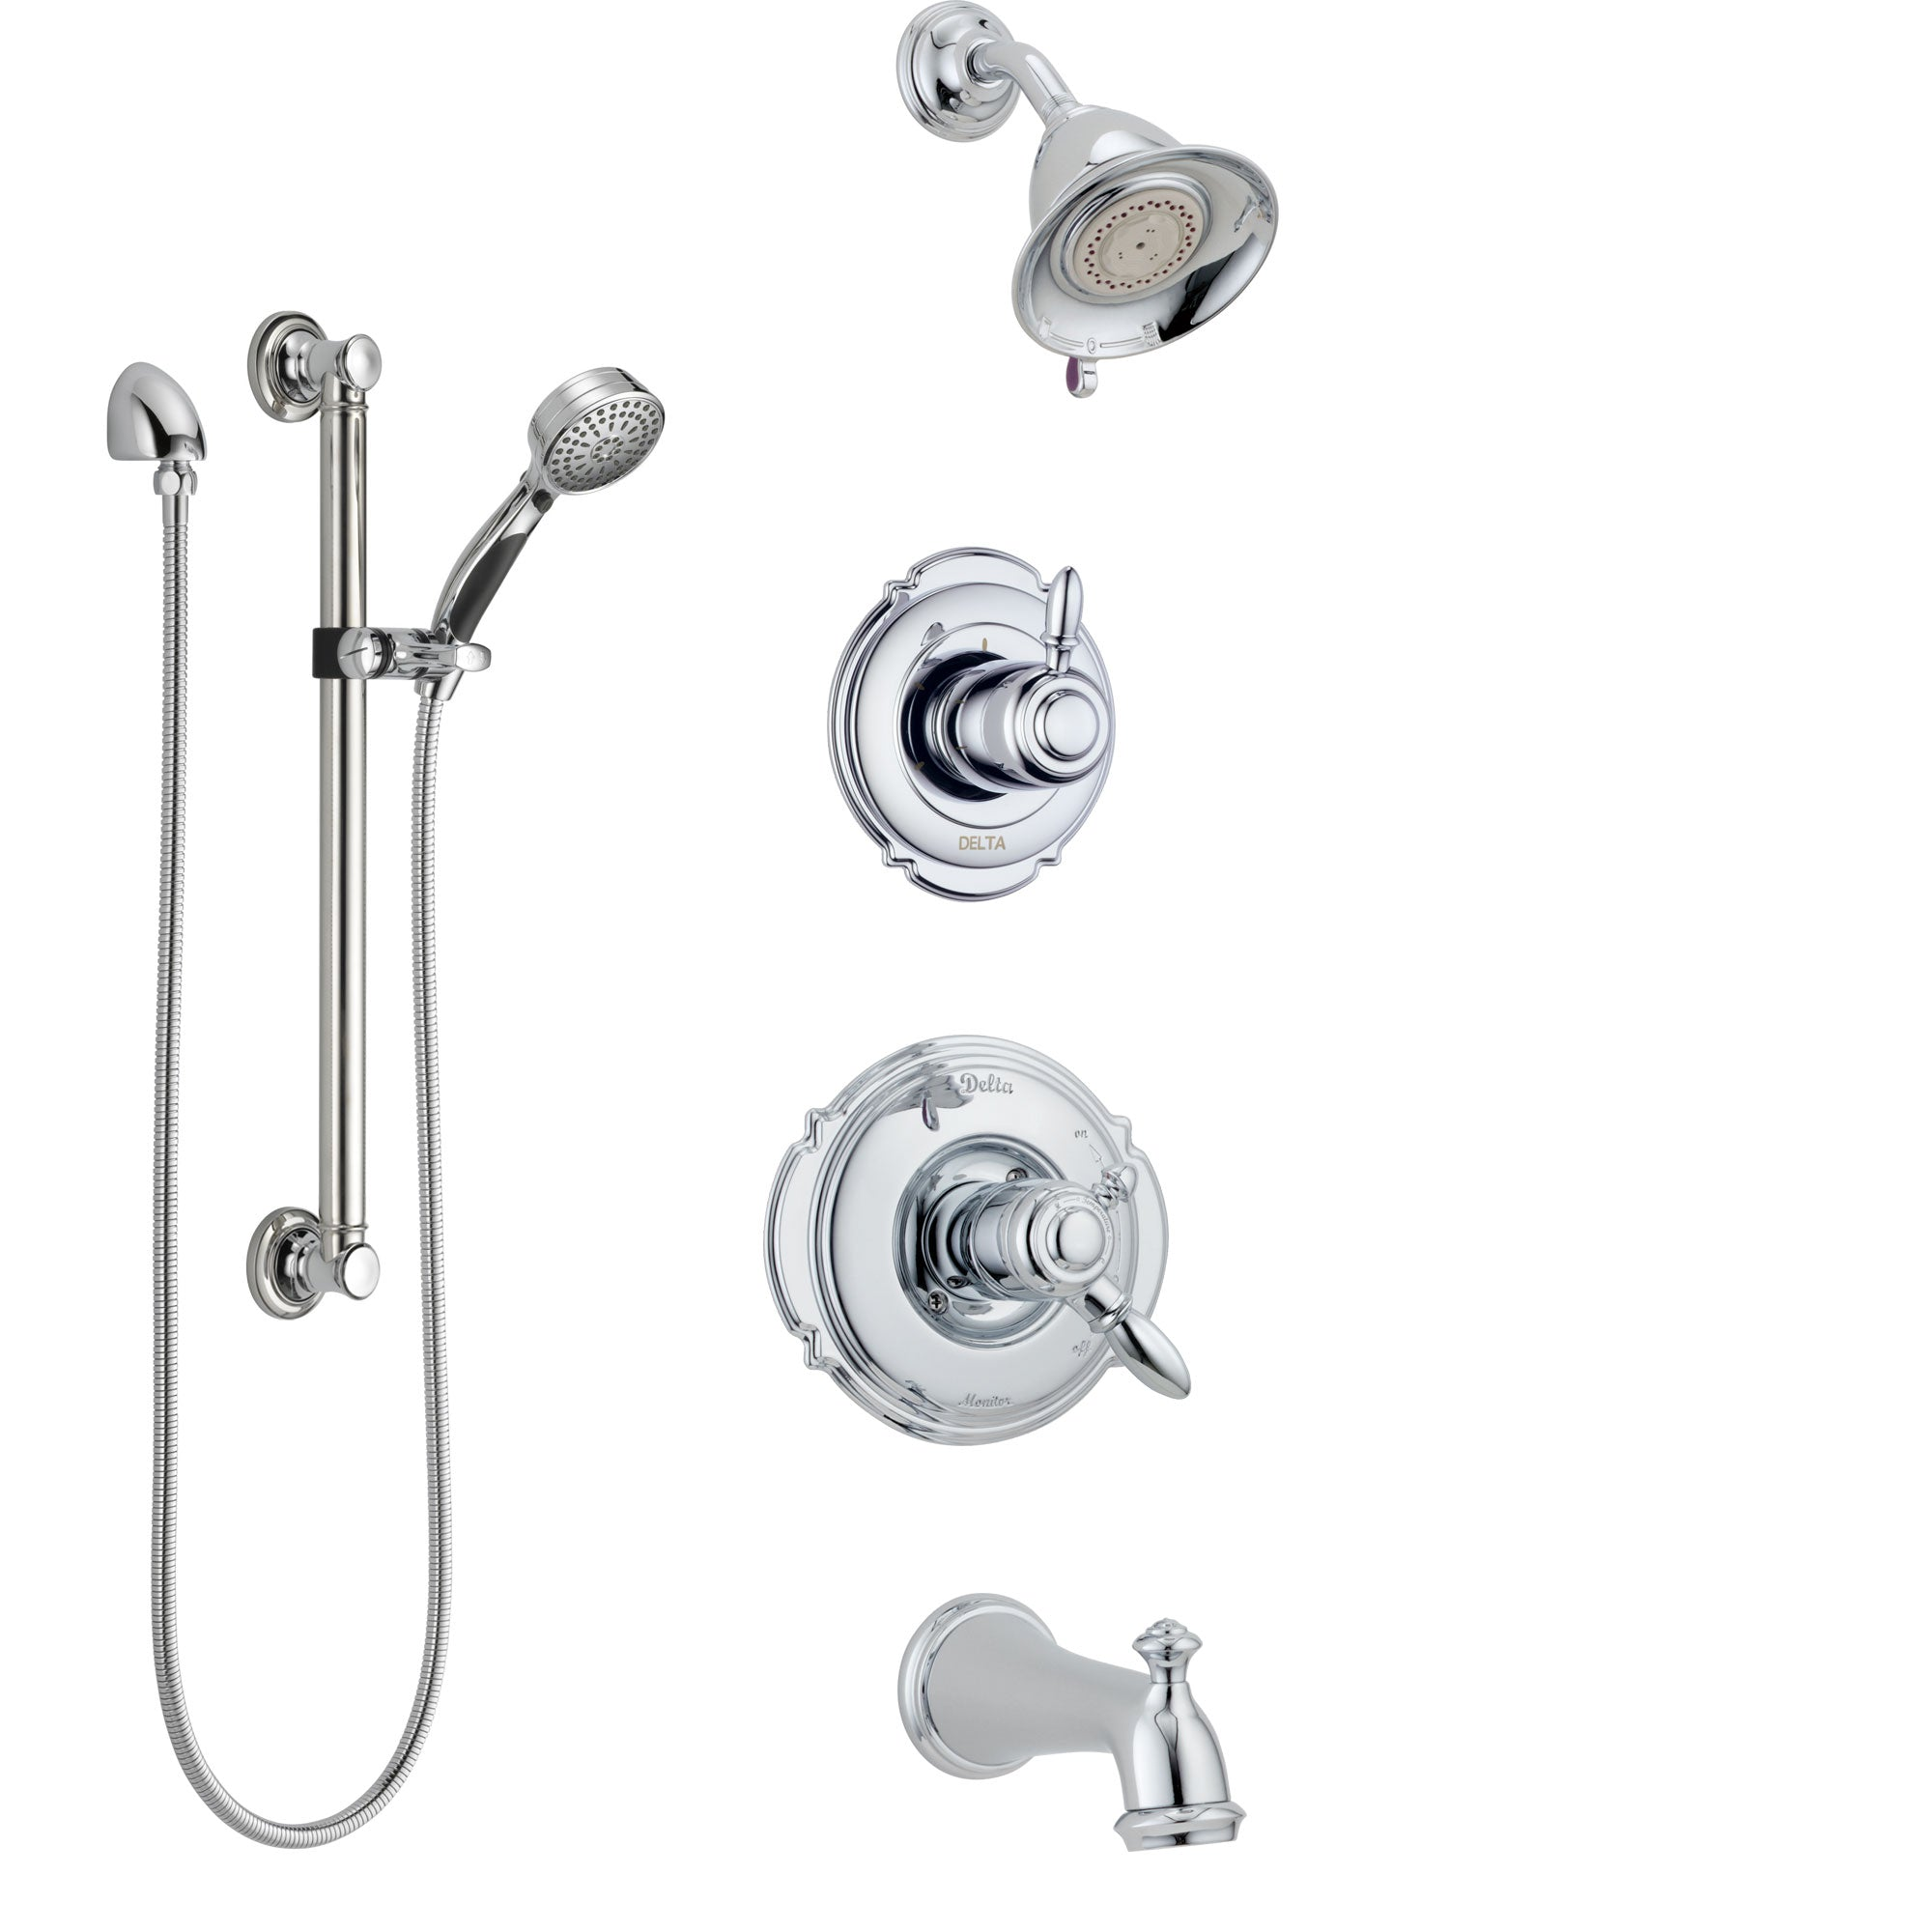 Delta Victorian Chrome Finish Tub and Shower System with Dual Control Handle, 3-Setting Diverter, Showerhead, and Hand Shower with Grab Bar SS1745513